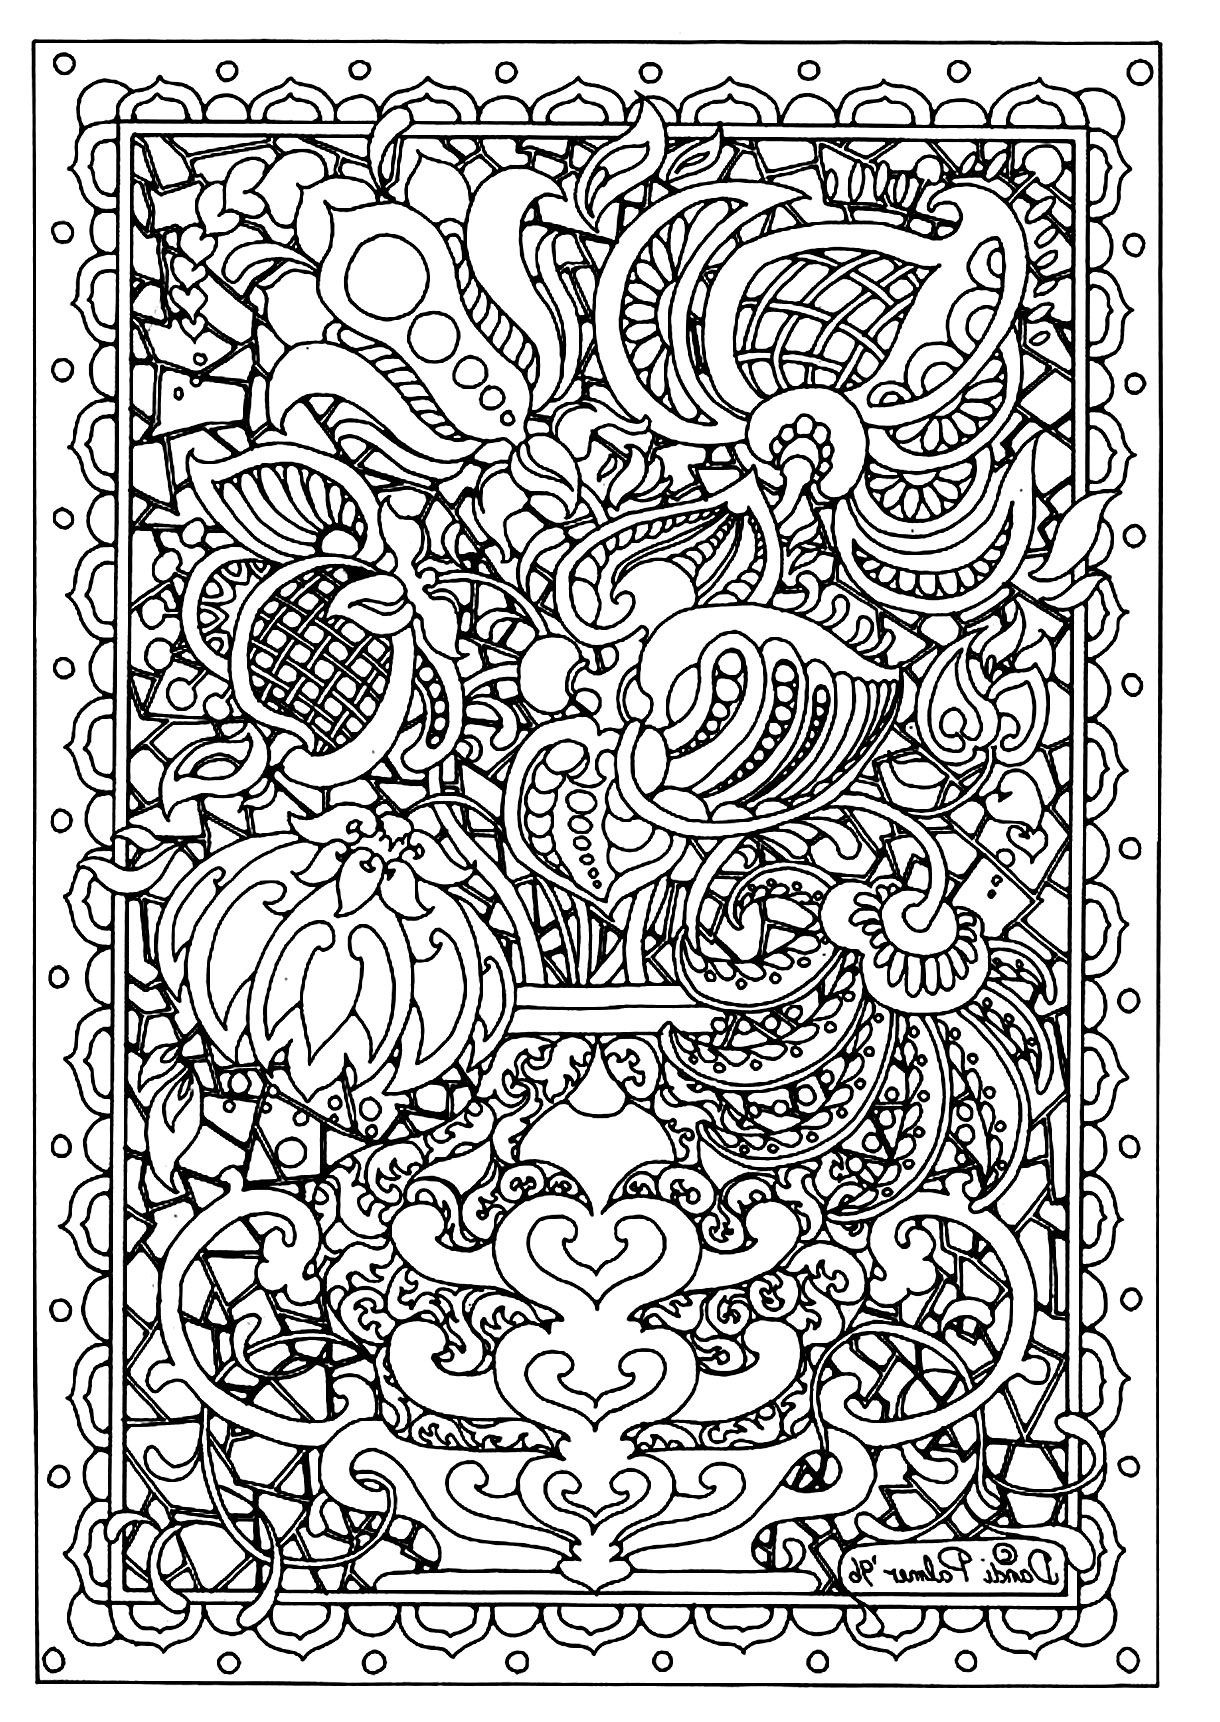 hard coloring pages for adults very difficult coloring pages for adults at getdrawings hard for pages adults coloring